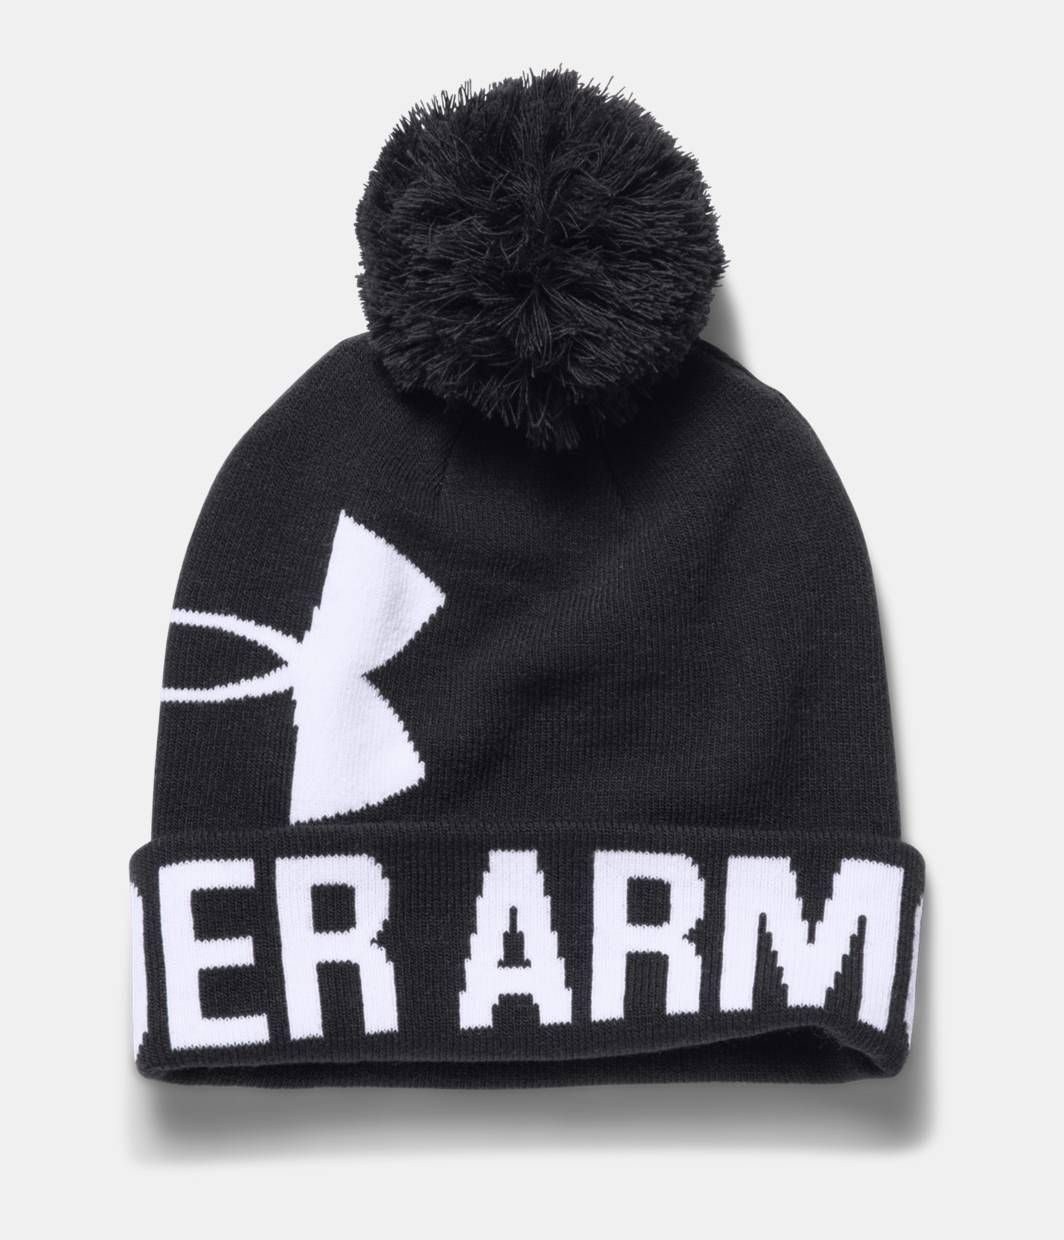 Shop Under Armour for Women s UA Graphic Pom Pom Beanie in our Womens  Beanies department. Free shipping is available in US. 5f2af3e14